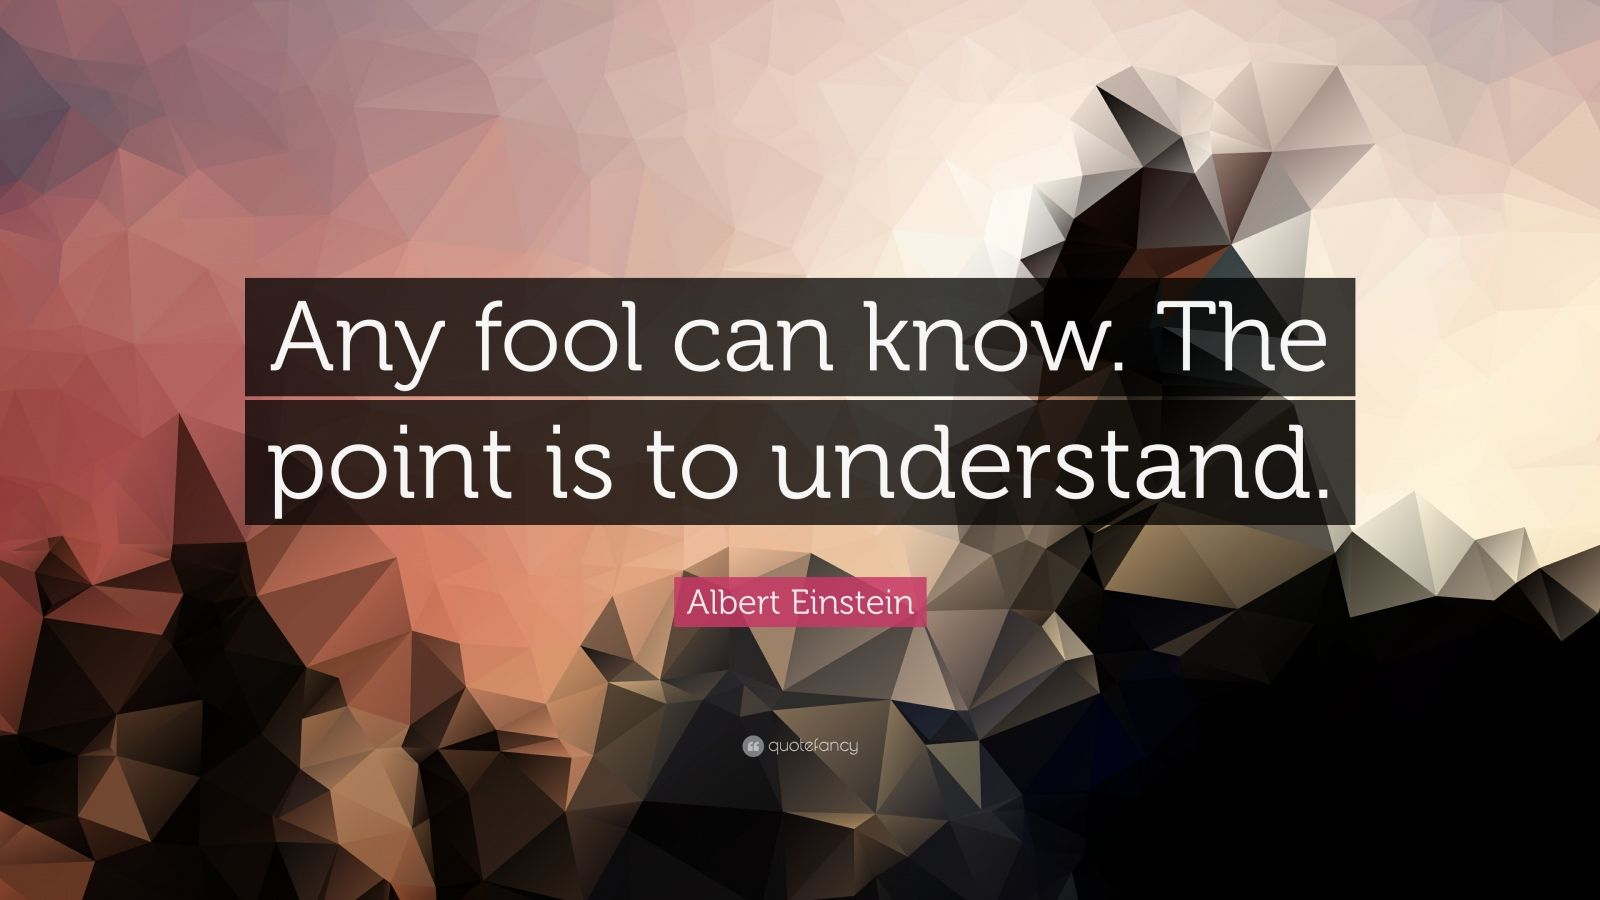 Business Success Quotes Wallpaper Albert Einstein Quote Any Fool Can Know The Point Is To